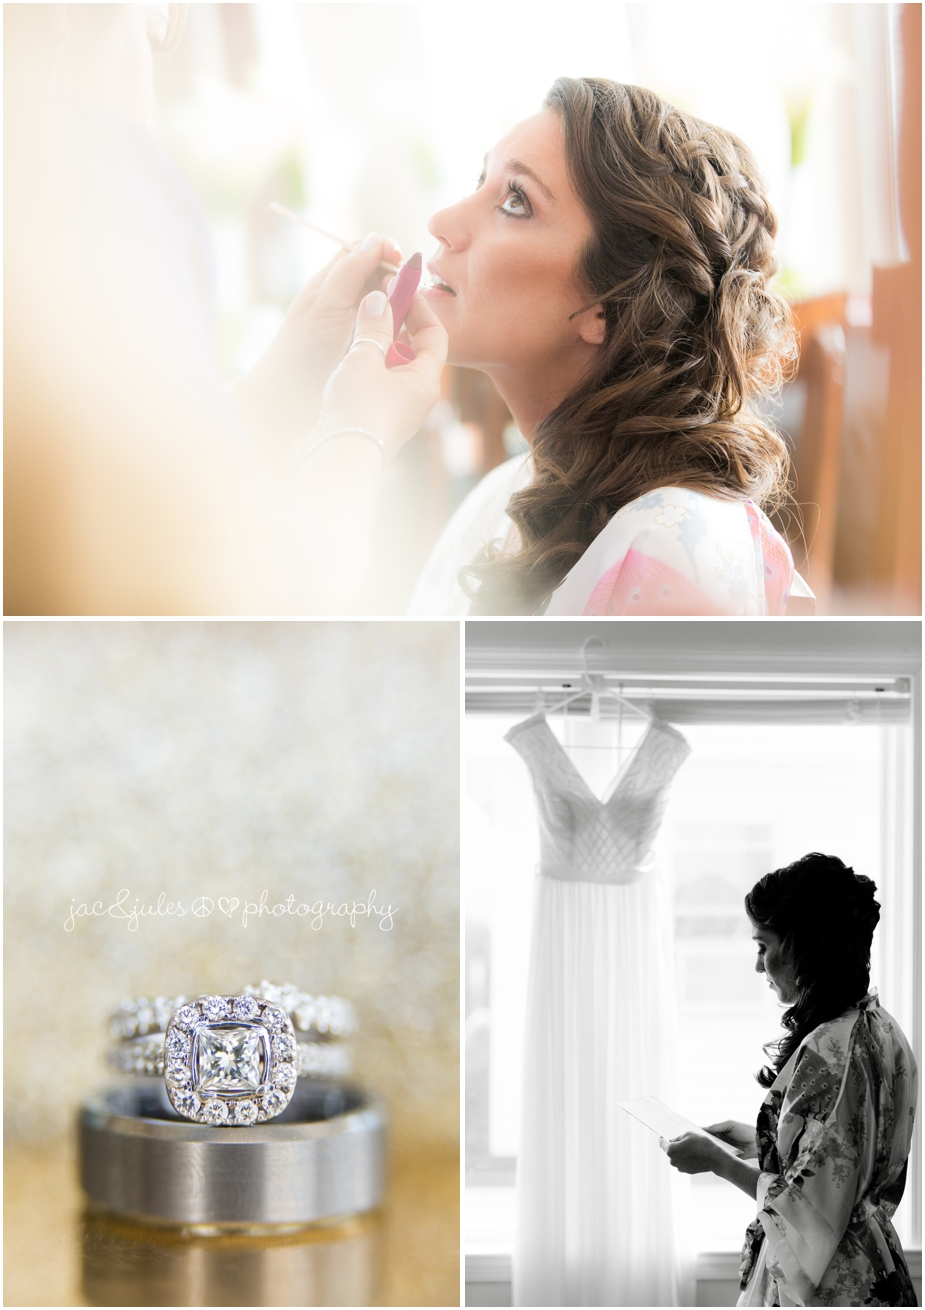 jacnjules photographs bride getting ready at The Stateroom in LBI